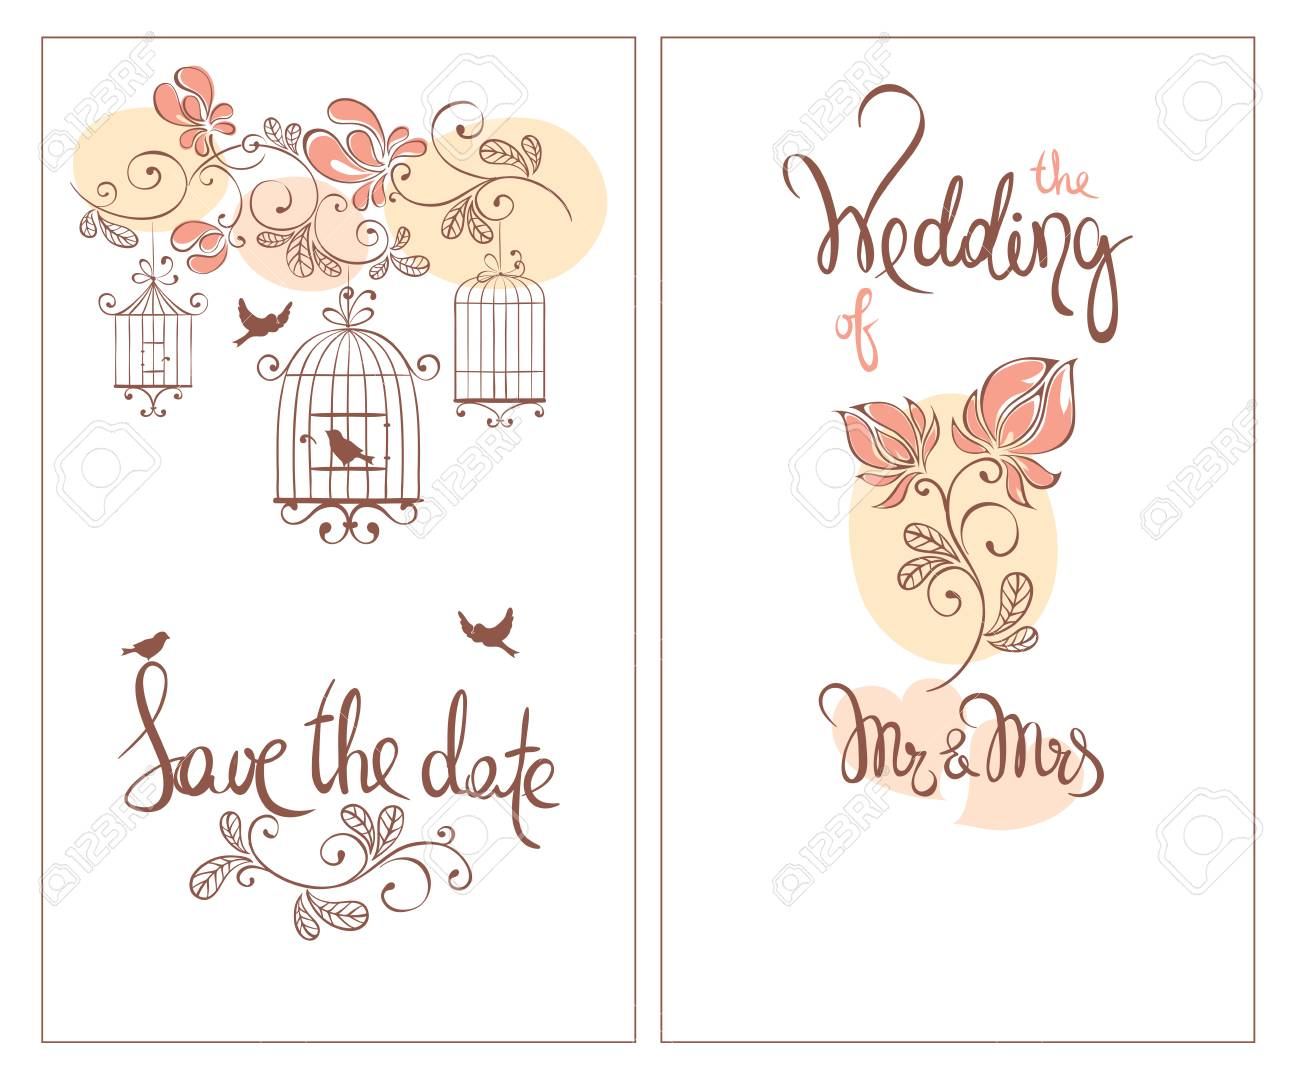 save the date wedding invitation card classic vector ornaments